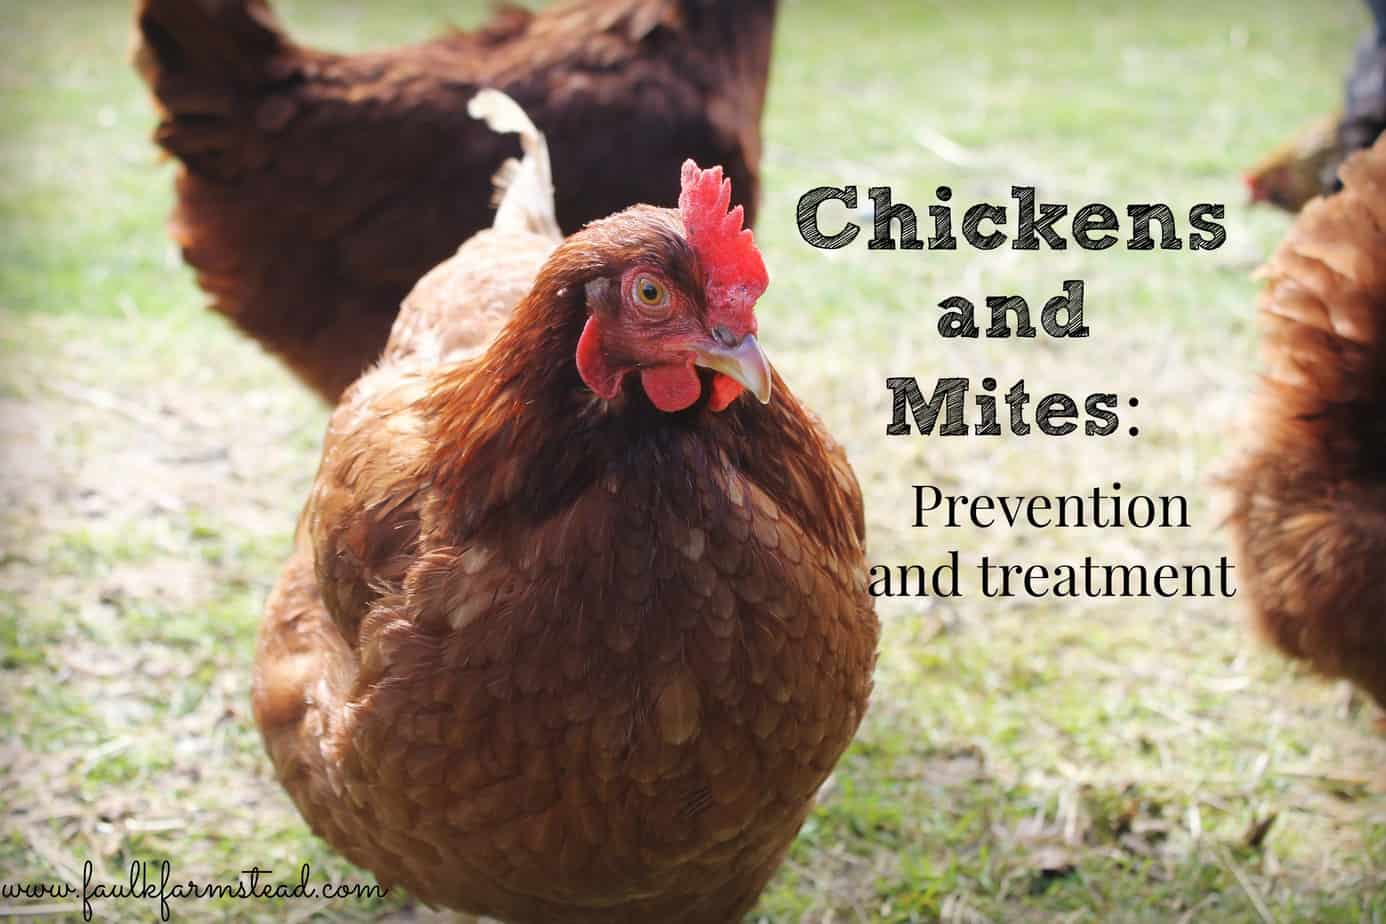 Chickens & Mites: Prevention and Treatment